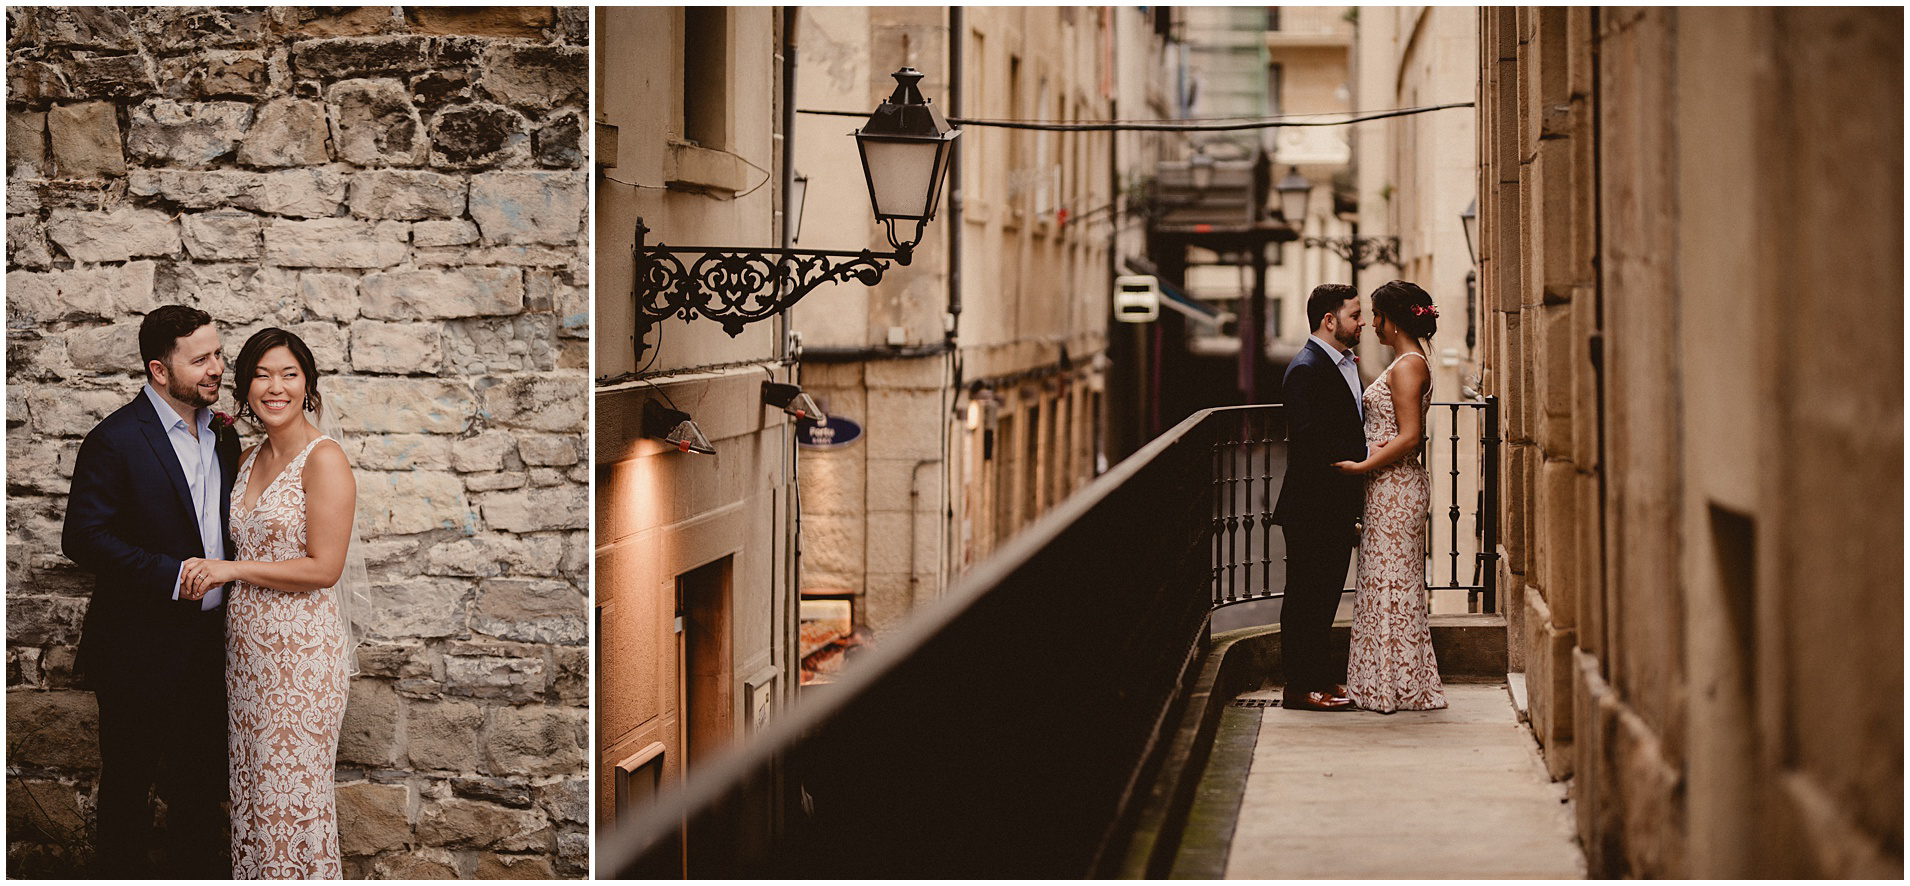 Brian & Julia - Destination wedding in San Sebastián  - Elopement in San Sebastian- ARTEFOTO55.jpg